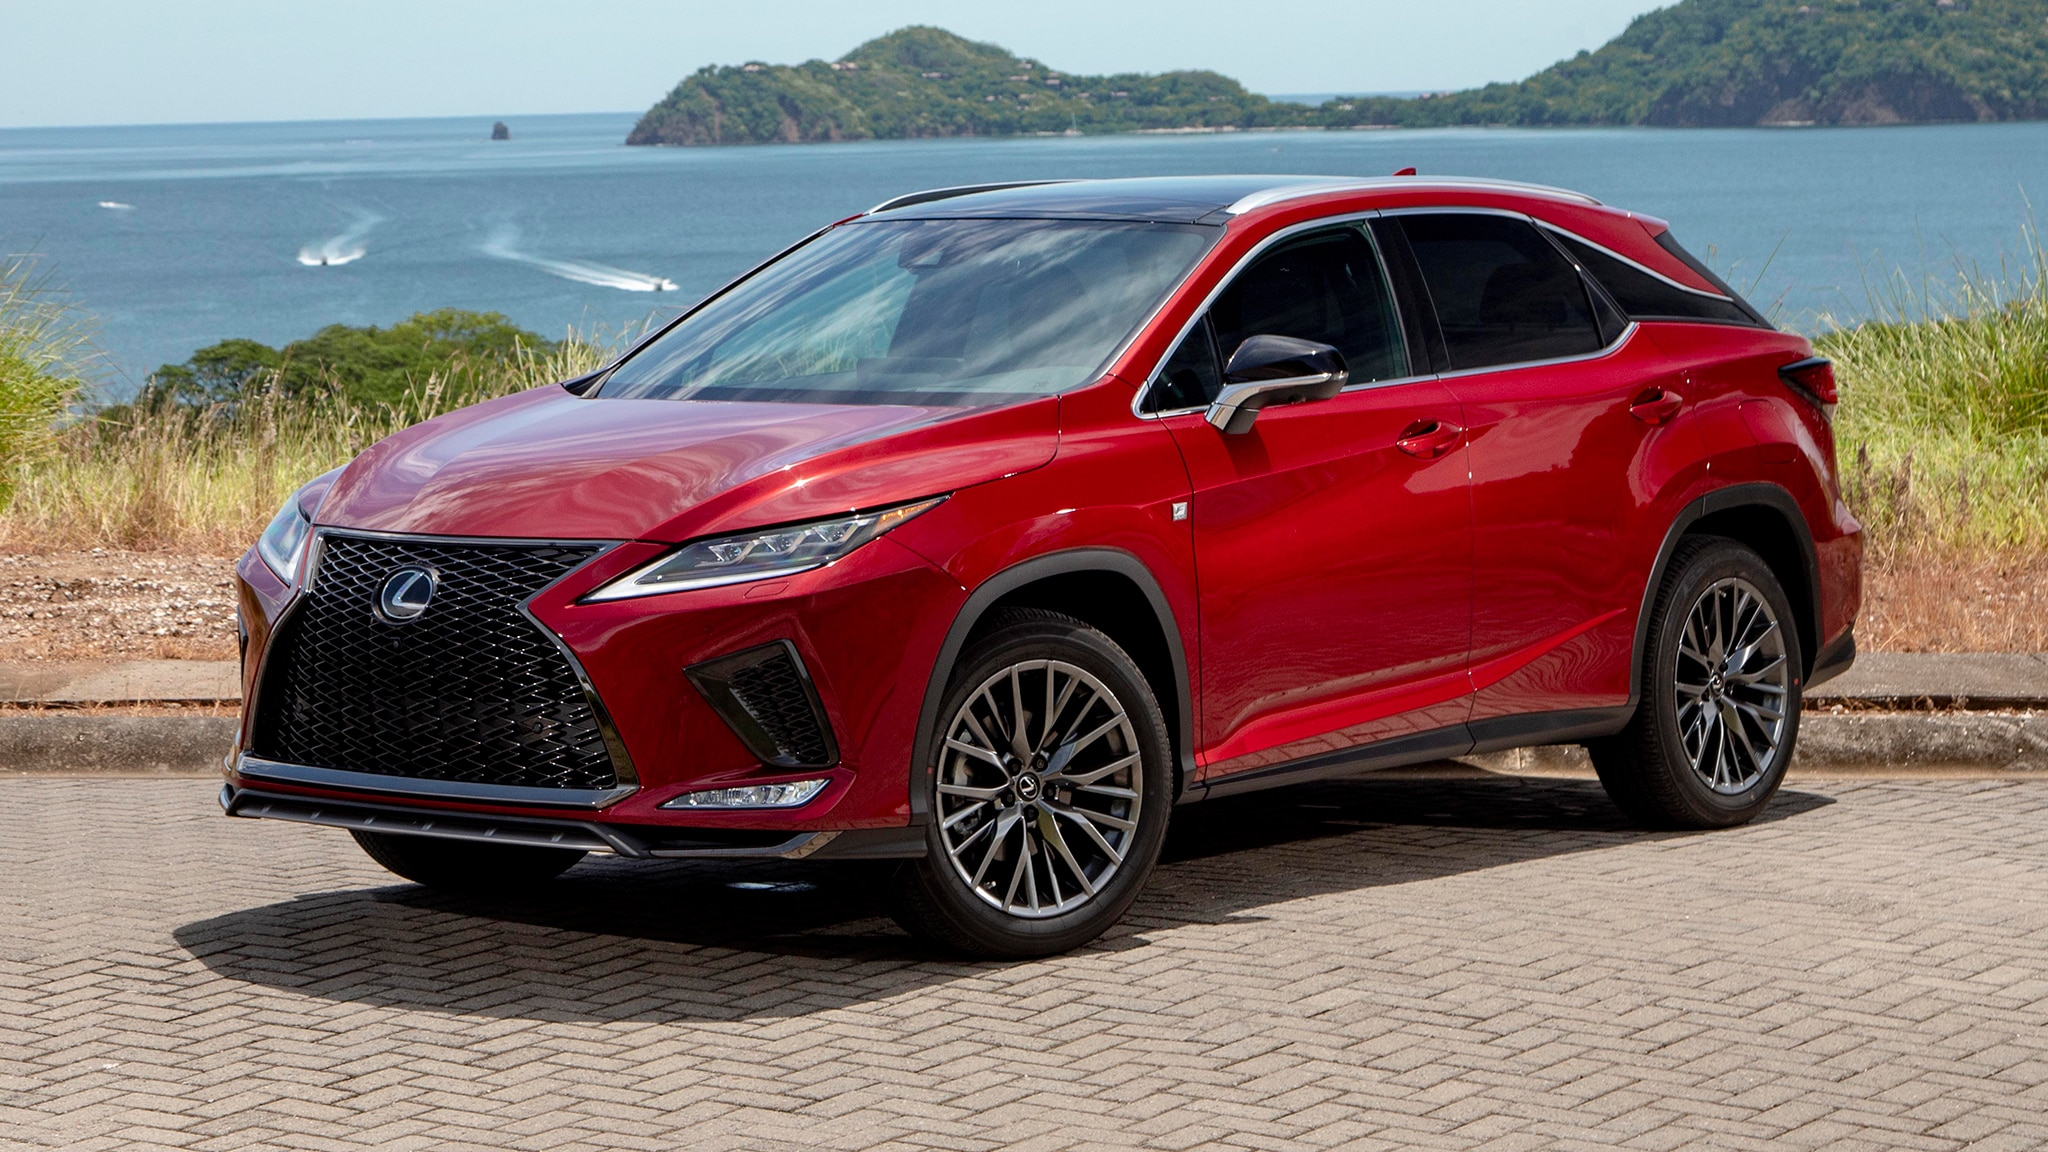 2020 Lexus RX First Drive Review: Blink and You'll Miss It